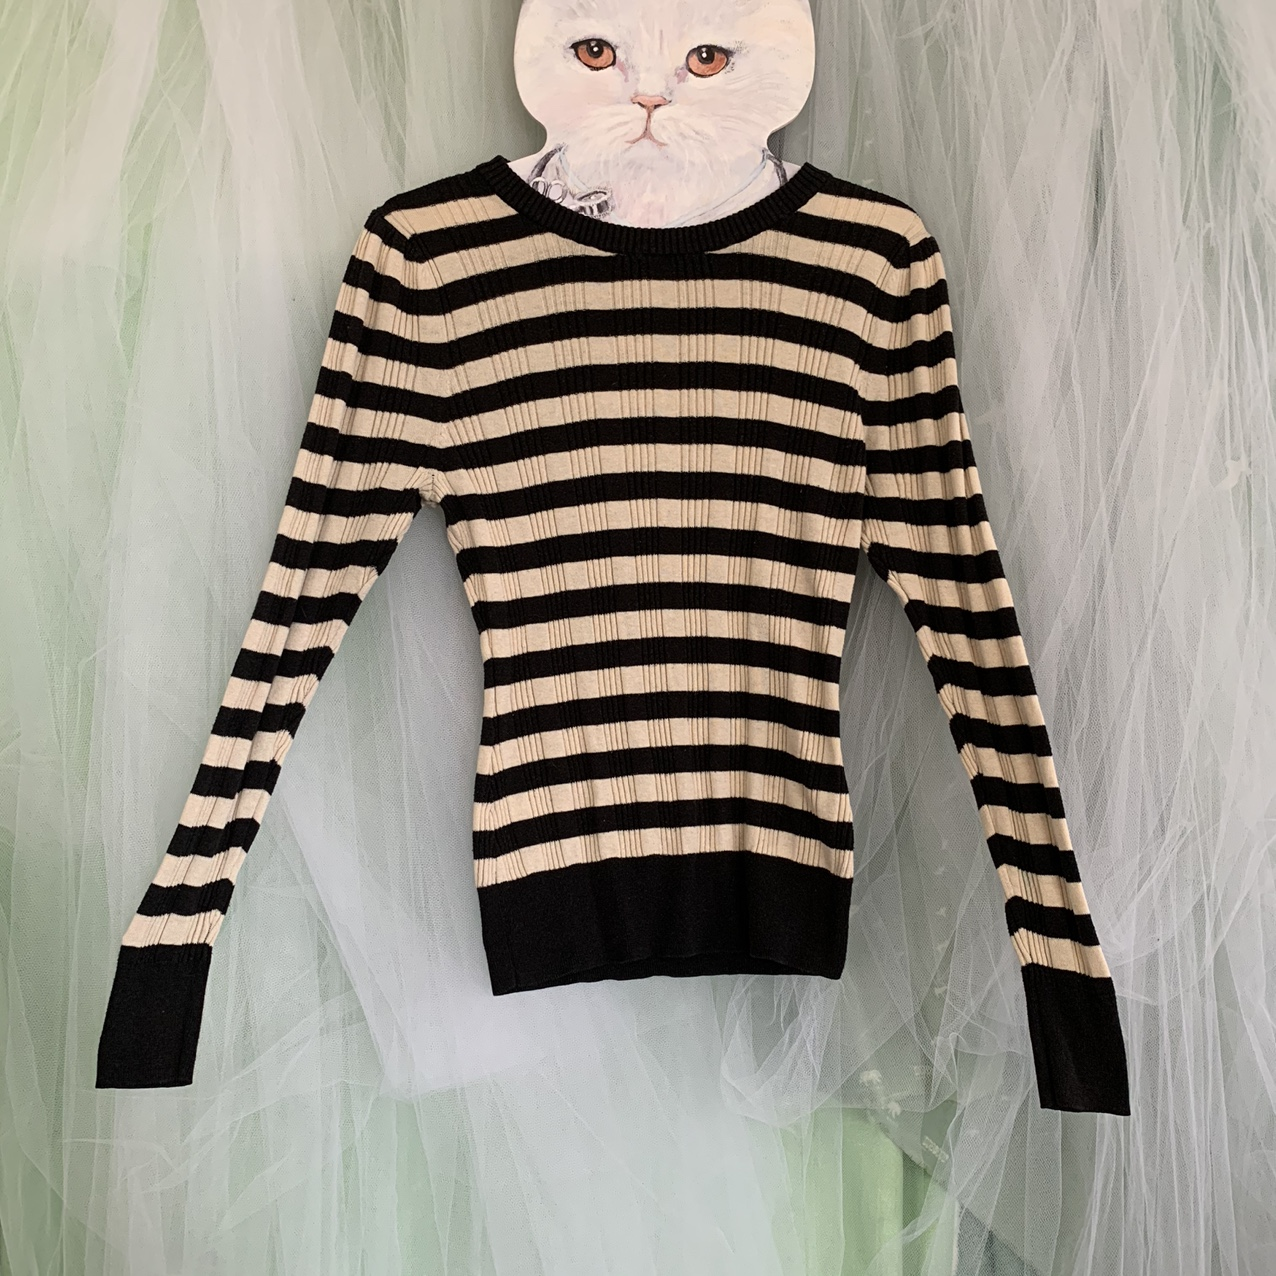 Product Image 1 - Black and cream striped knit